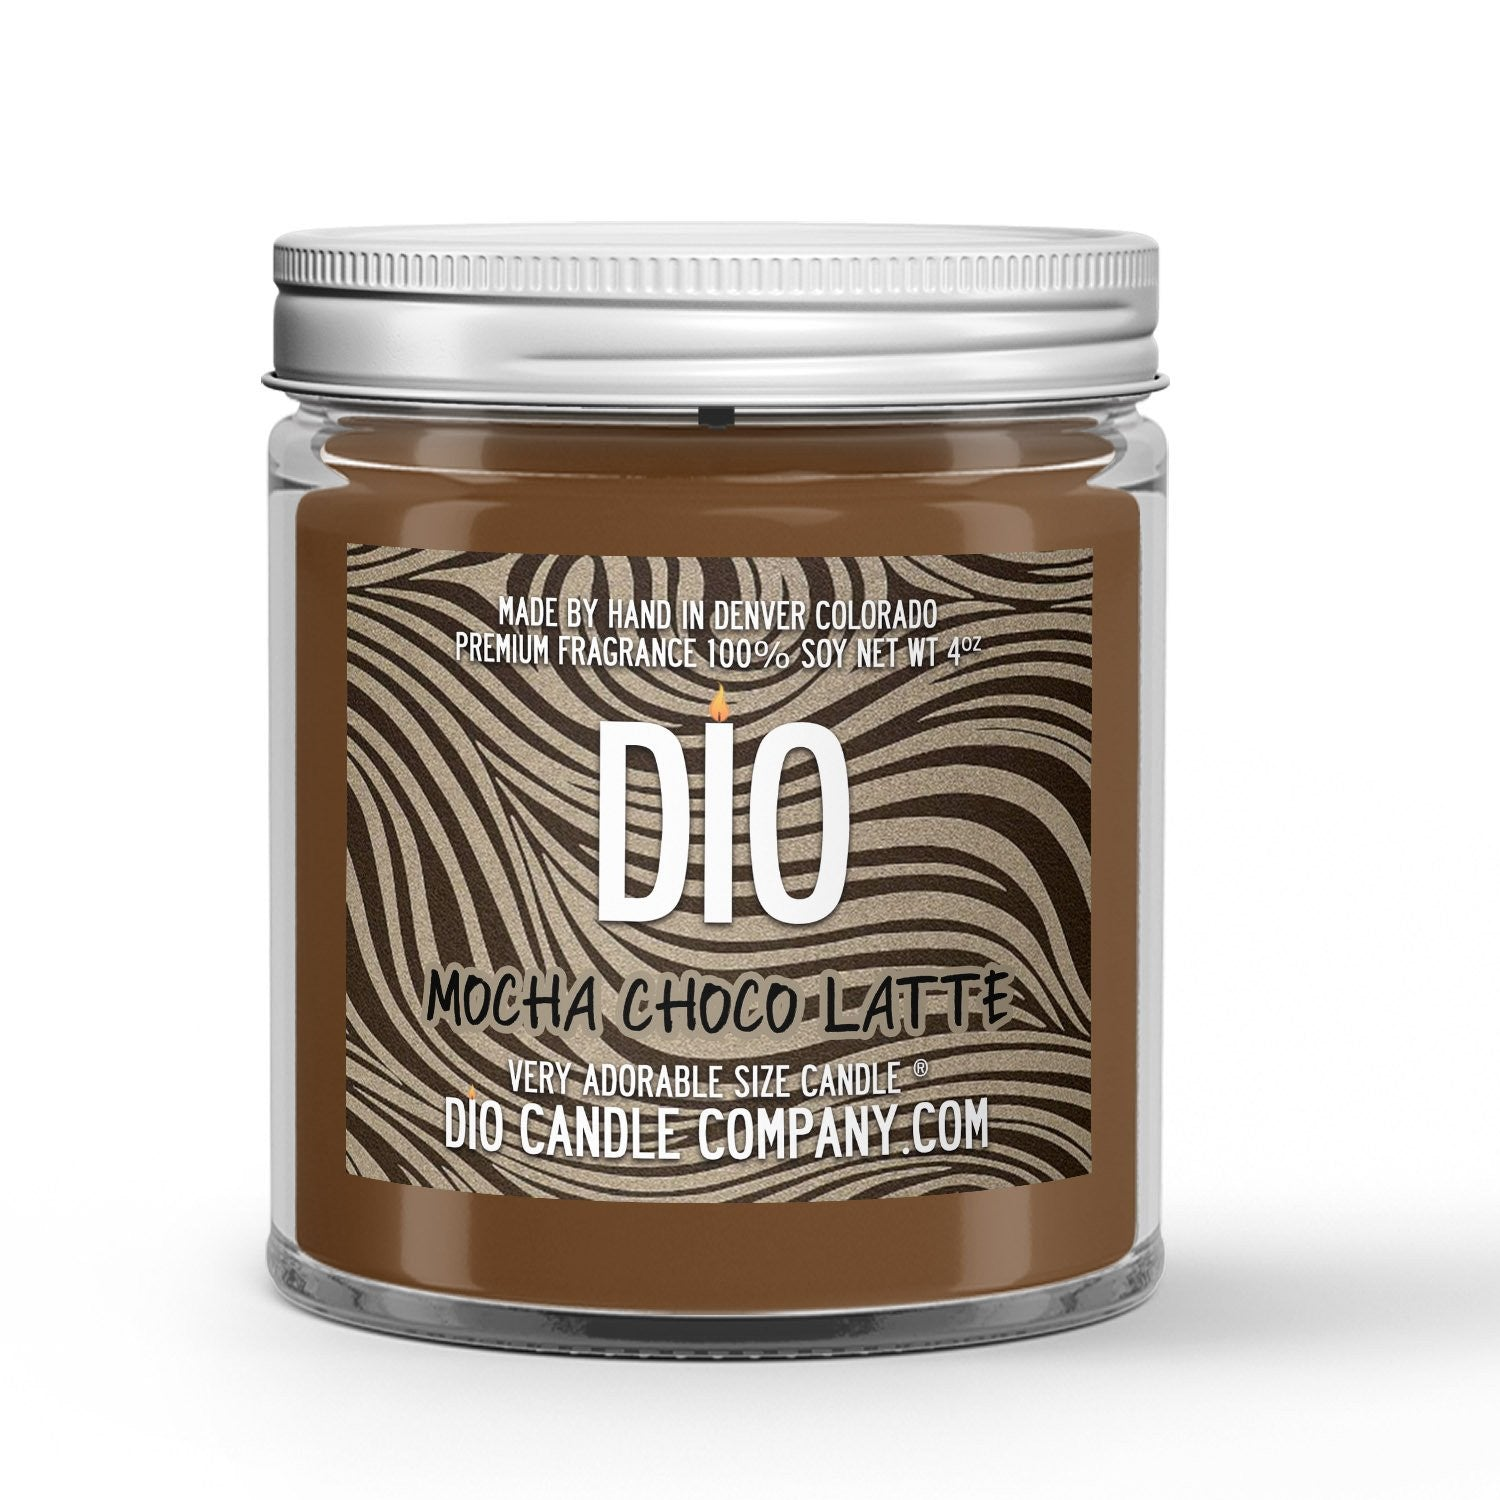 Mocha Choco Latte Mother's Day Candle Chocolate - Coffee Scented - Dio Candle Company